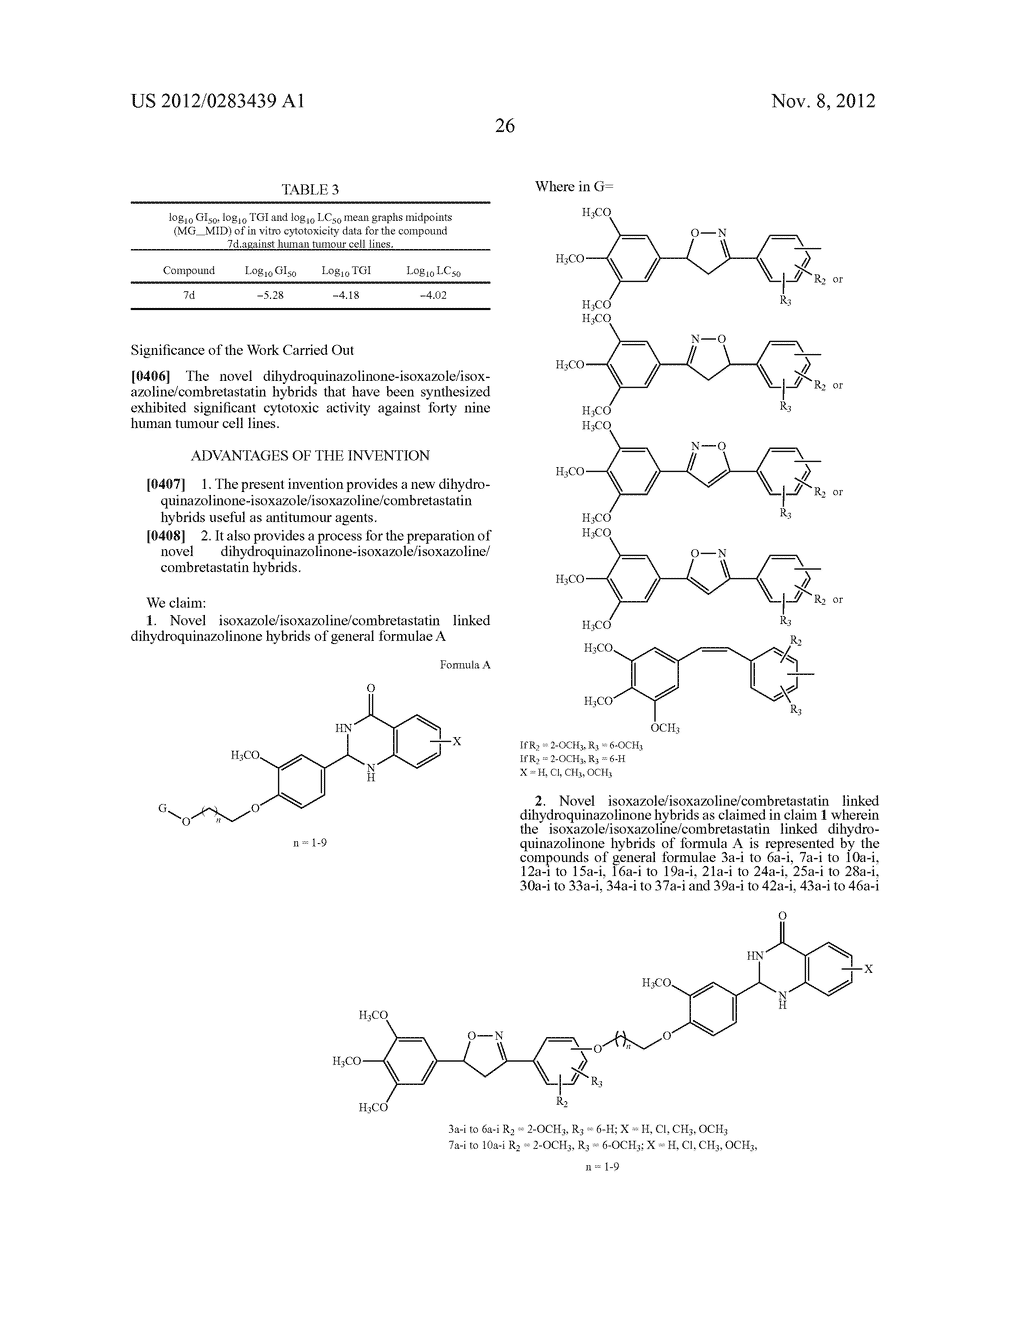 ISOXAZOLE/ISOXAZOLINE/COMBRETASTATIN LINKED DIHYDROQUINAZOLINONE HYBRIDS     AS POTENTIAL ANTICANCER AGENTS AND PROCESS FOR THE PREPARATION THEREOF - diagram, schematic, and image 28